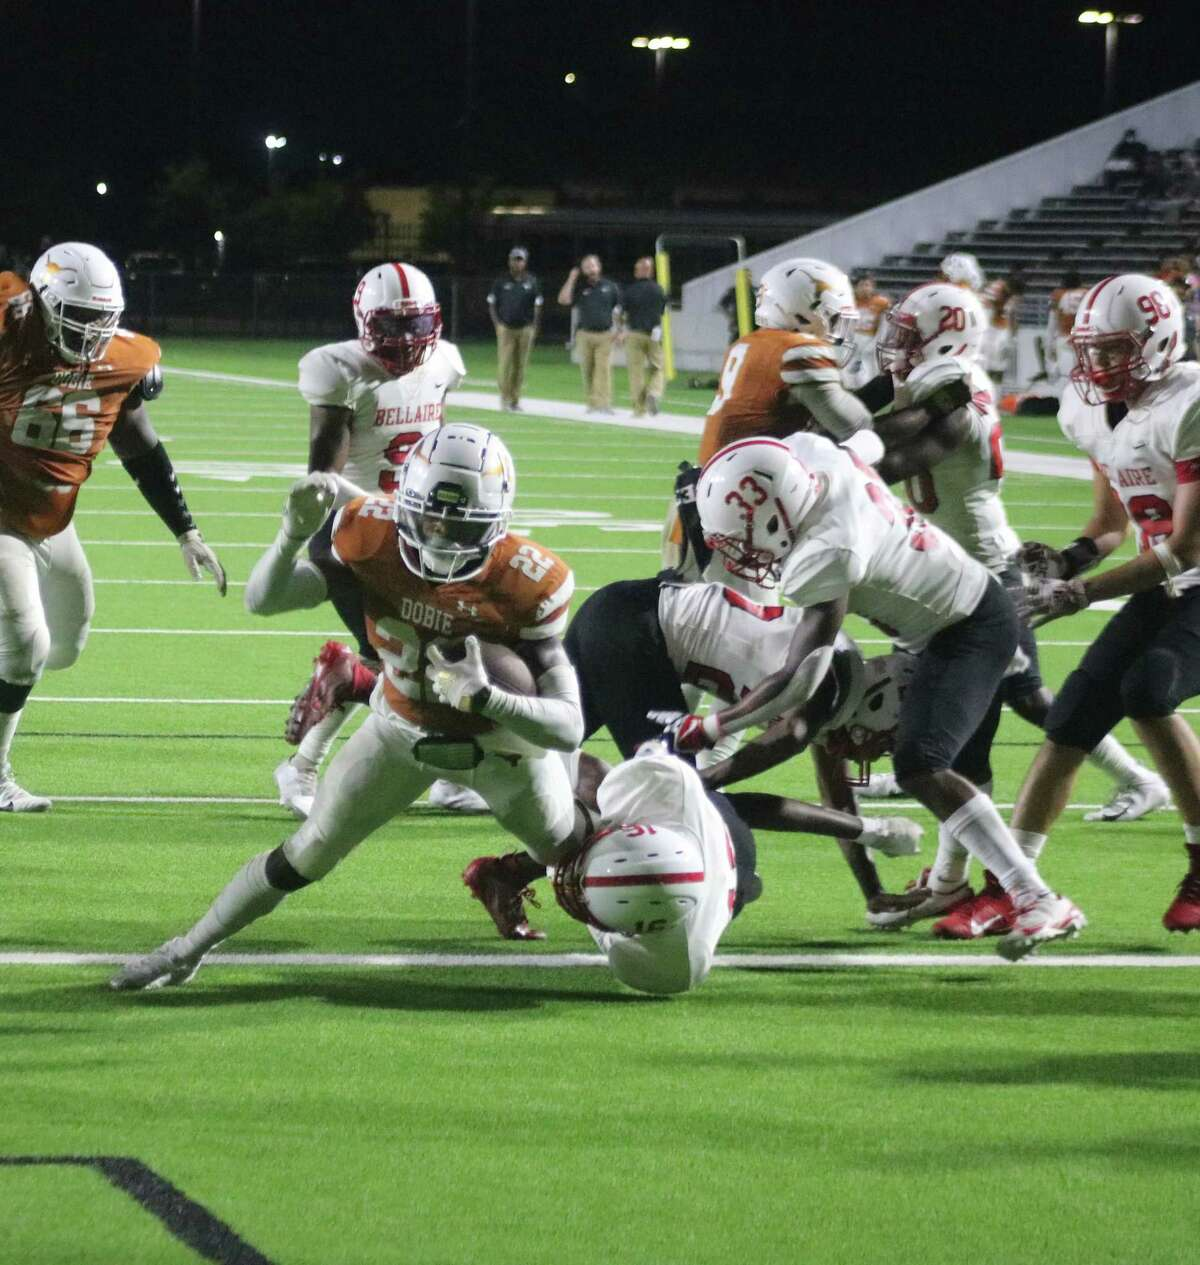 Trajan Davis powers his way over the goal line for one of his three touchdowns on the night. This one went for six yards and the first score of the second half. He finished with 208 rushing yards.